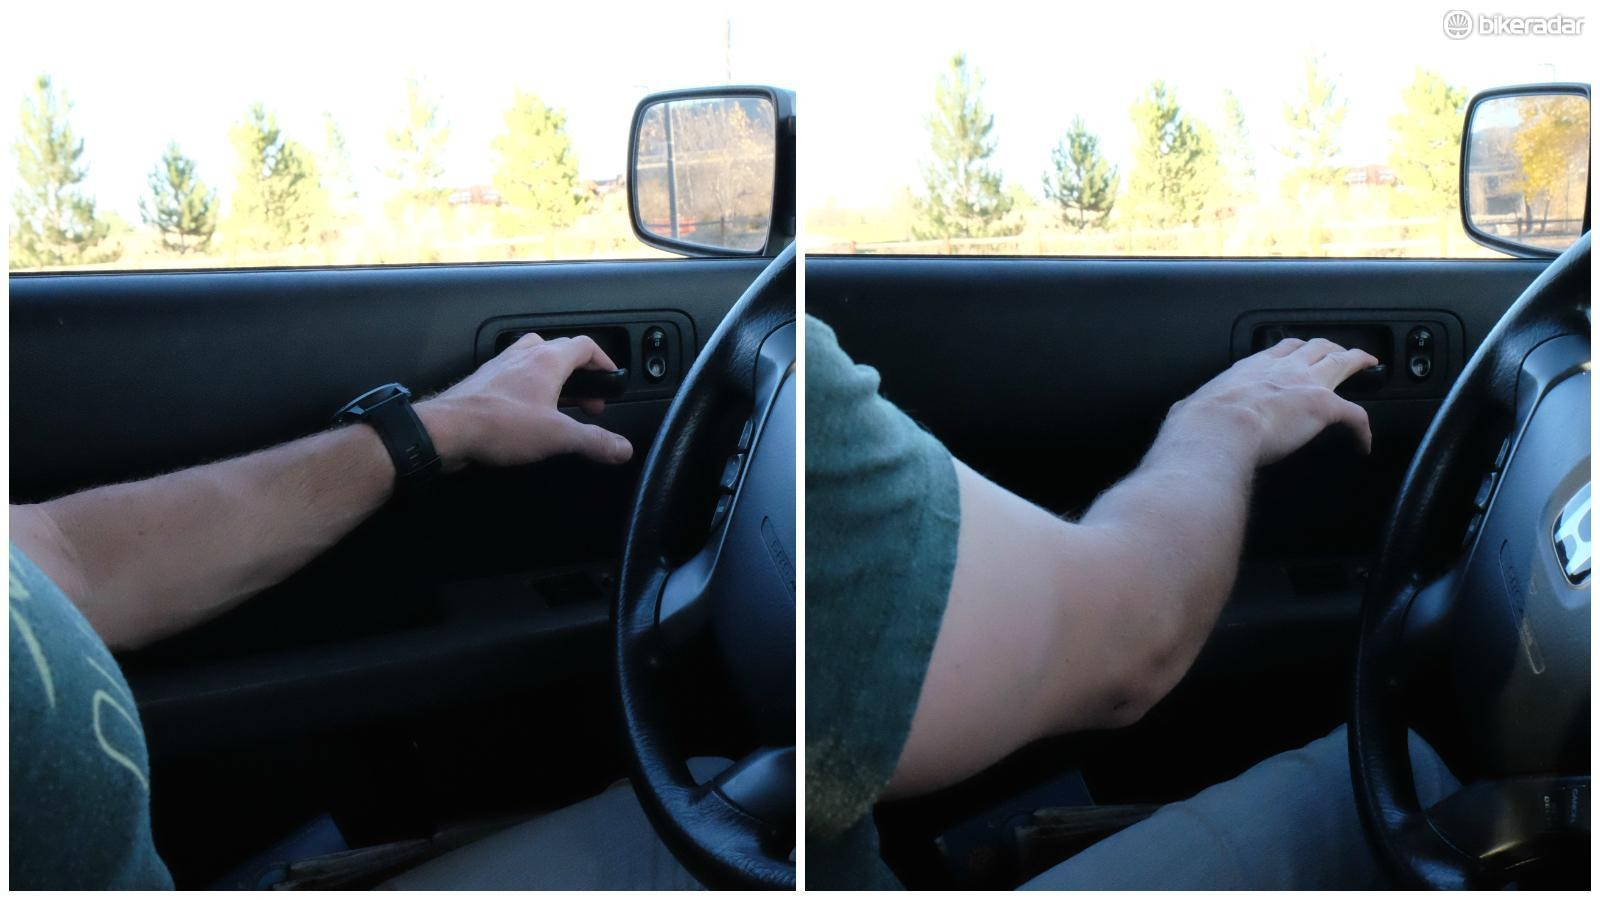 The Dutch Reach is a method of opening a car door with the hand that's furthest from it, forcing you to turn and look behind